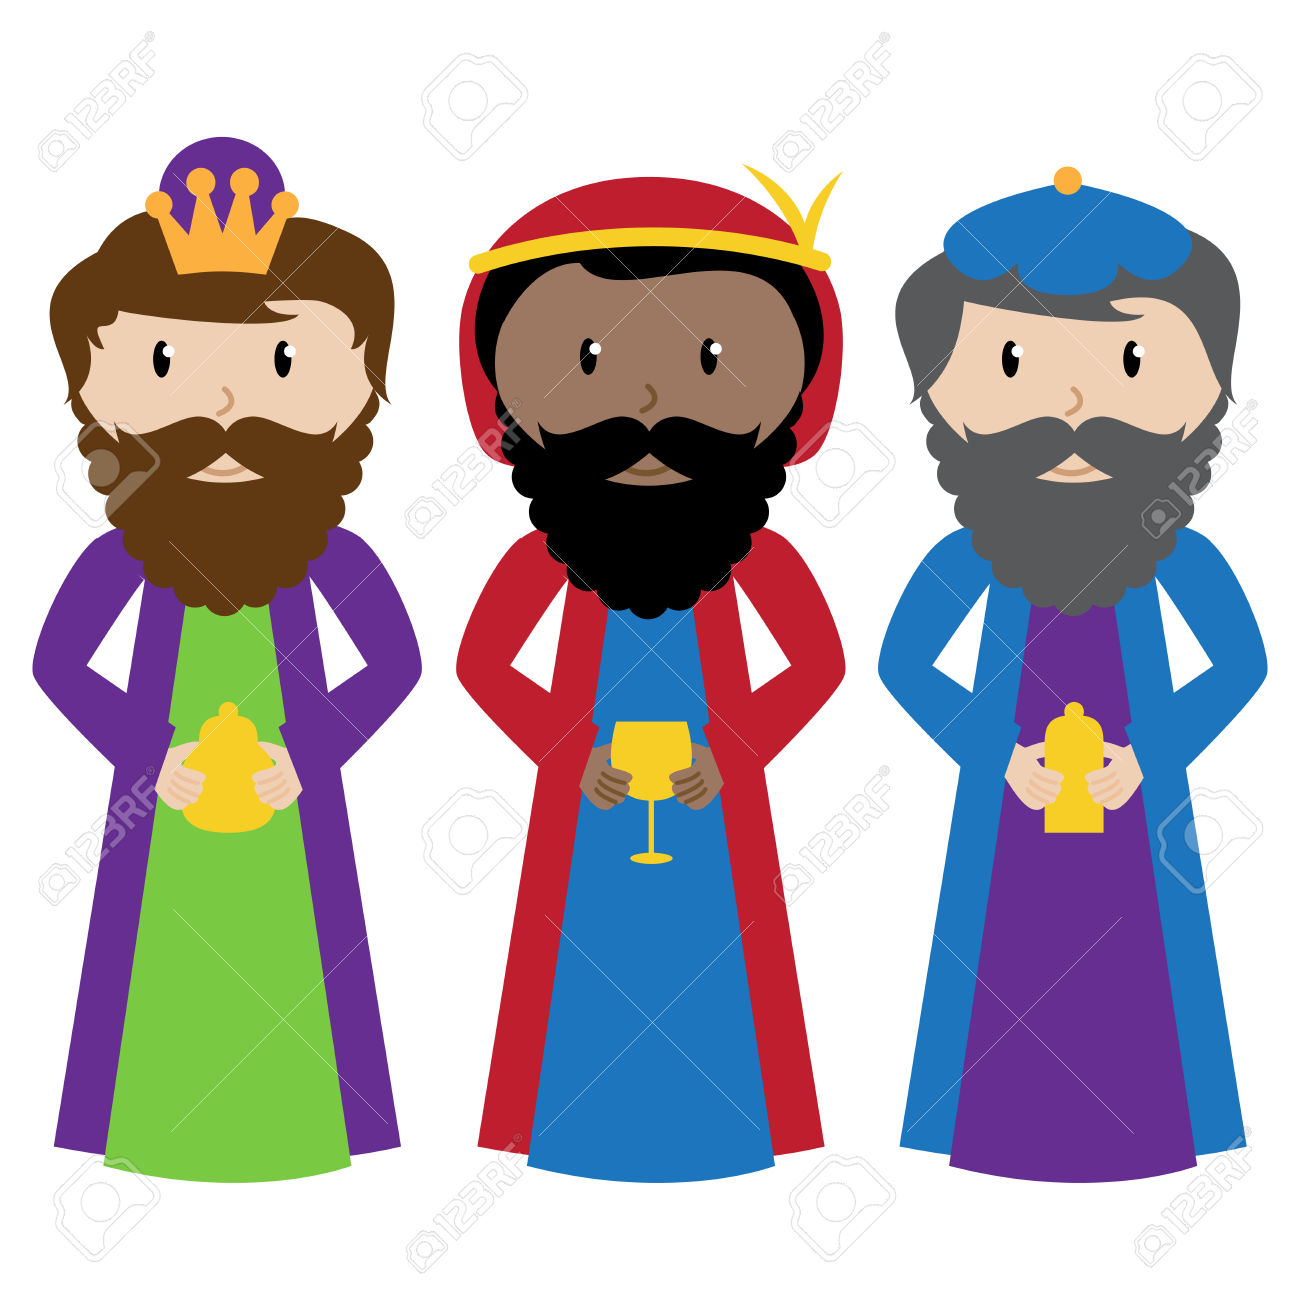 three wise men: Vector Collection of the Three Wise Men or Magi Illustration